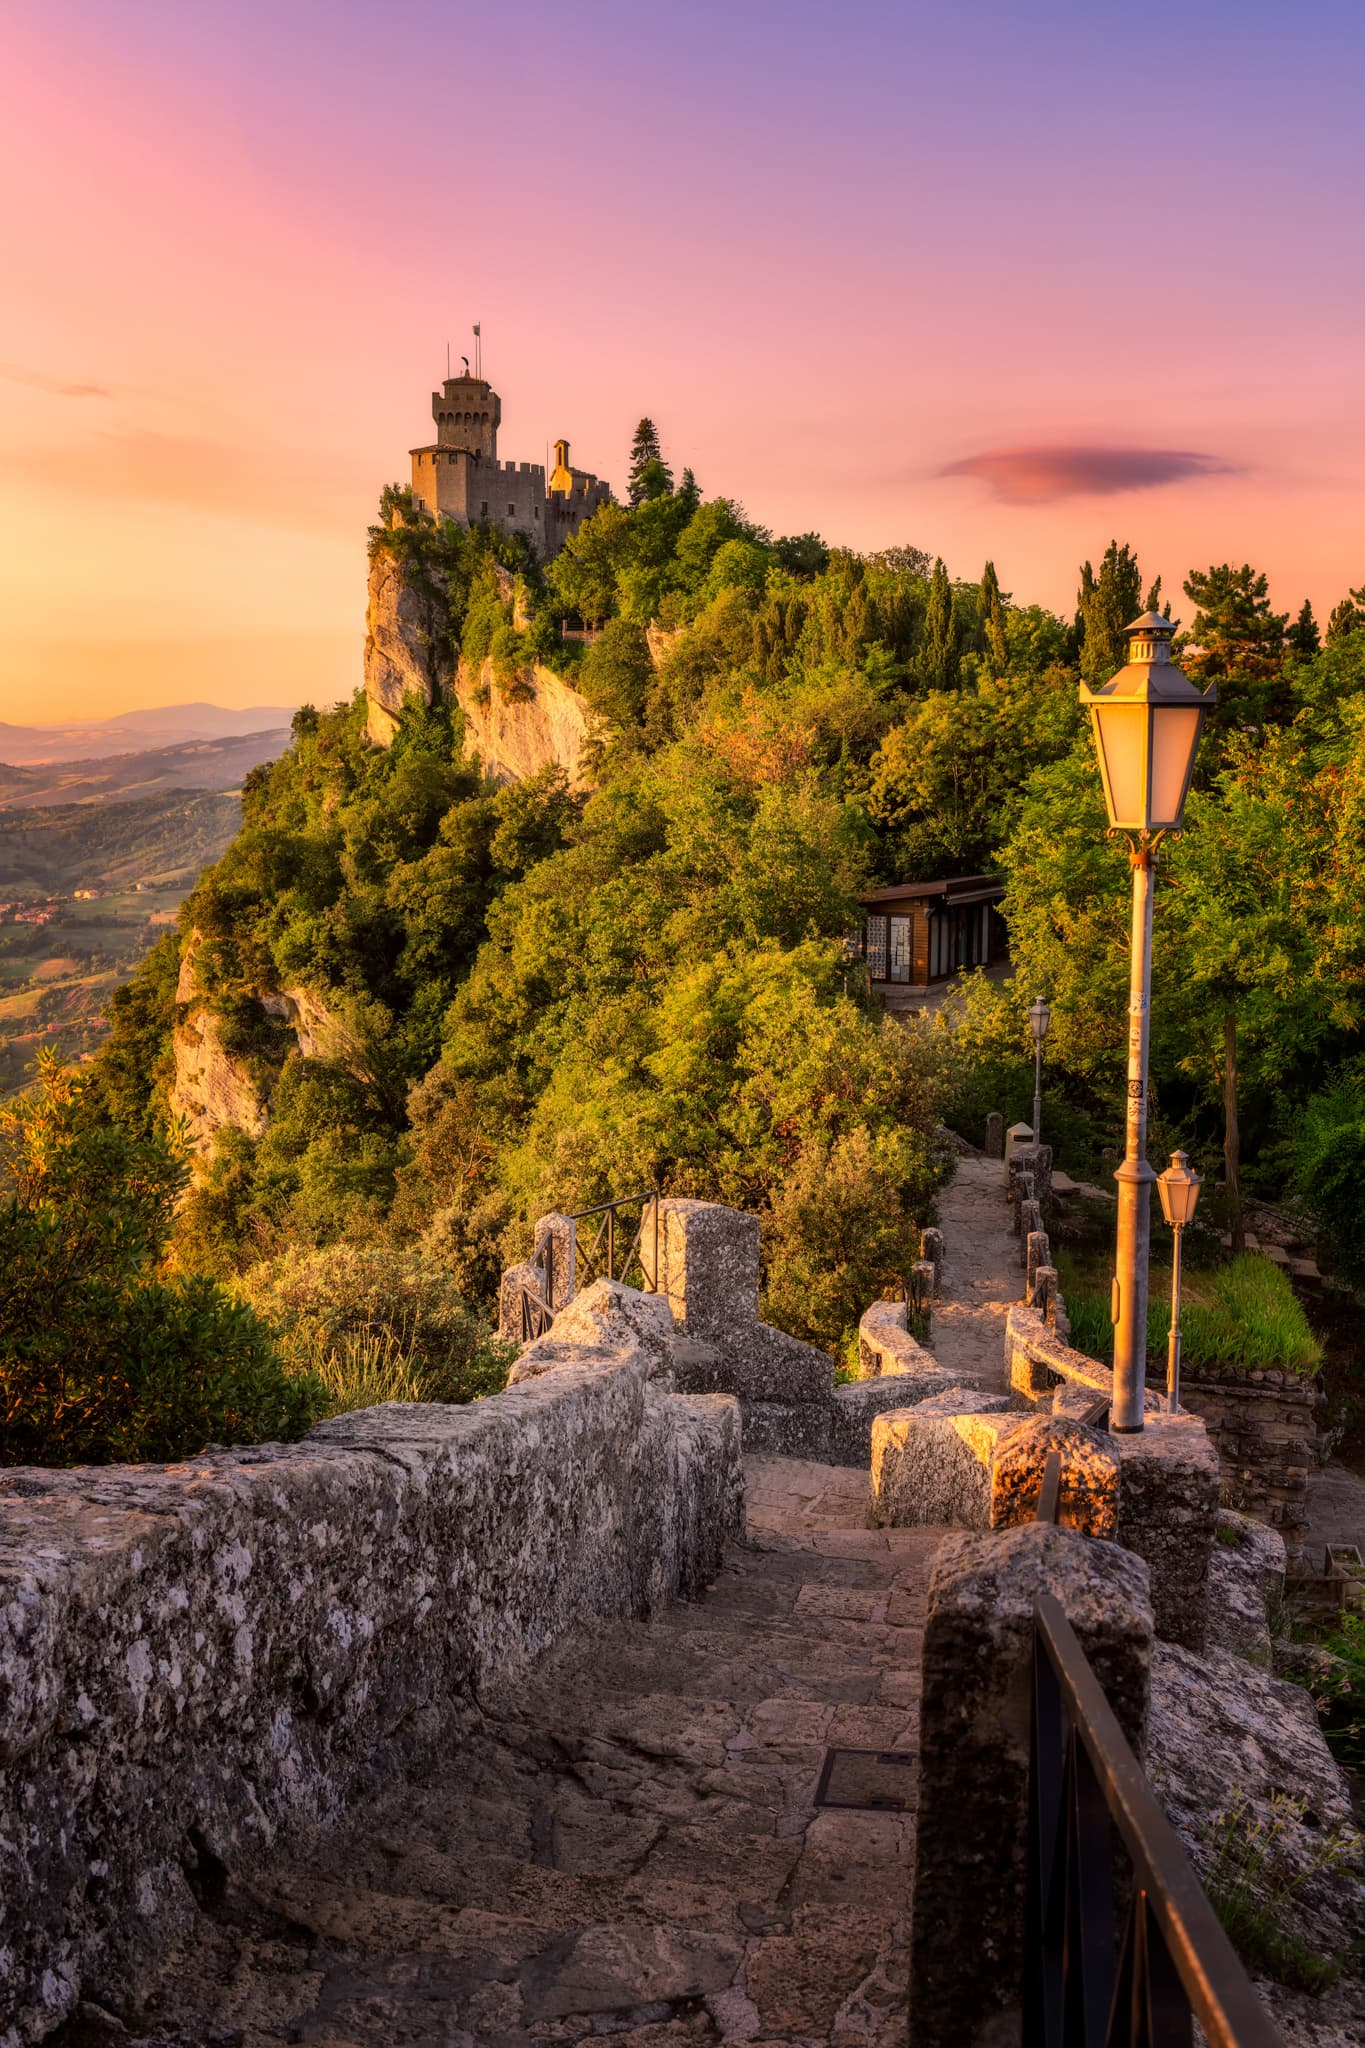 Republic of San Marino - photo of the walls and the tower